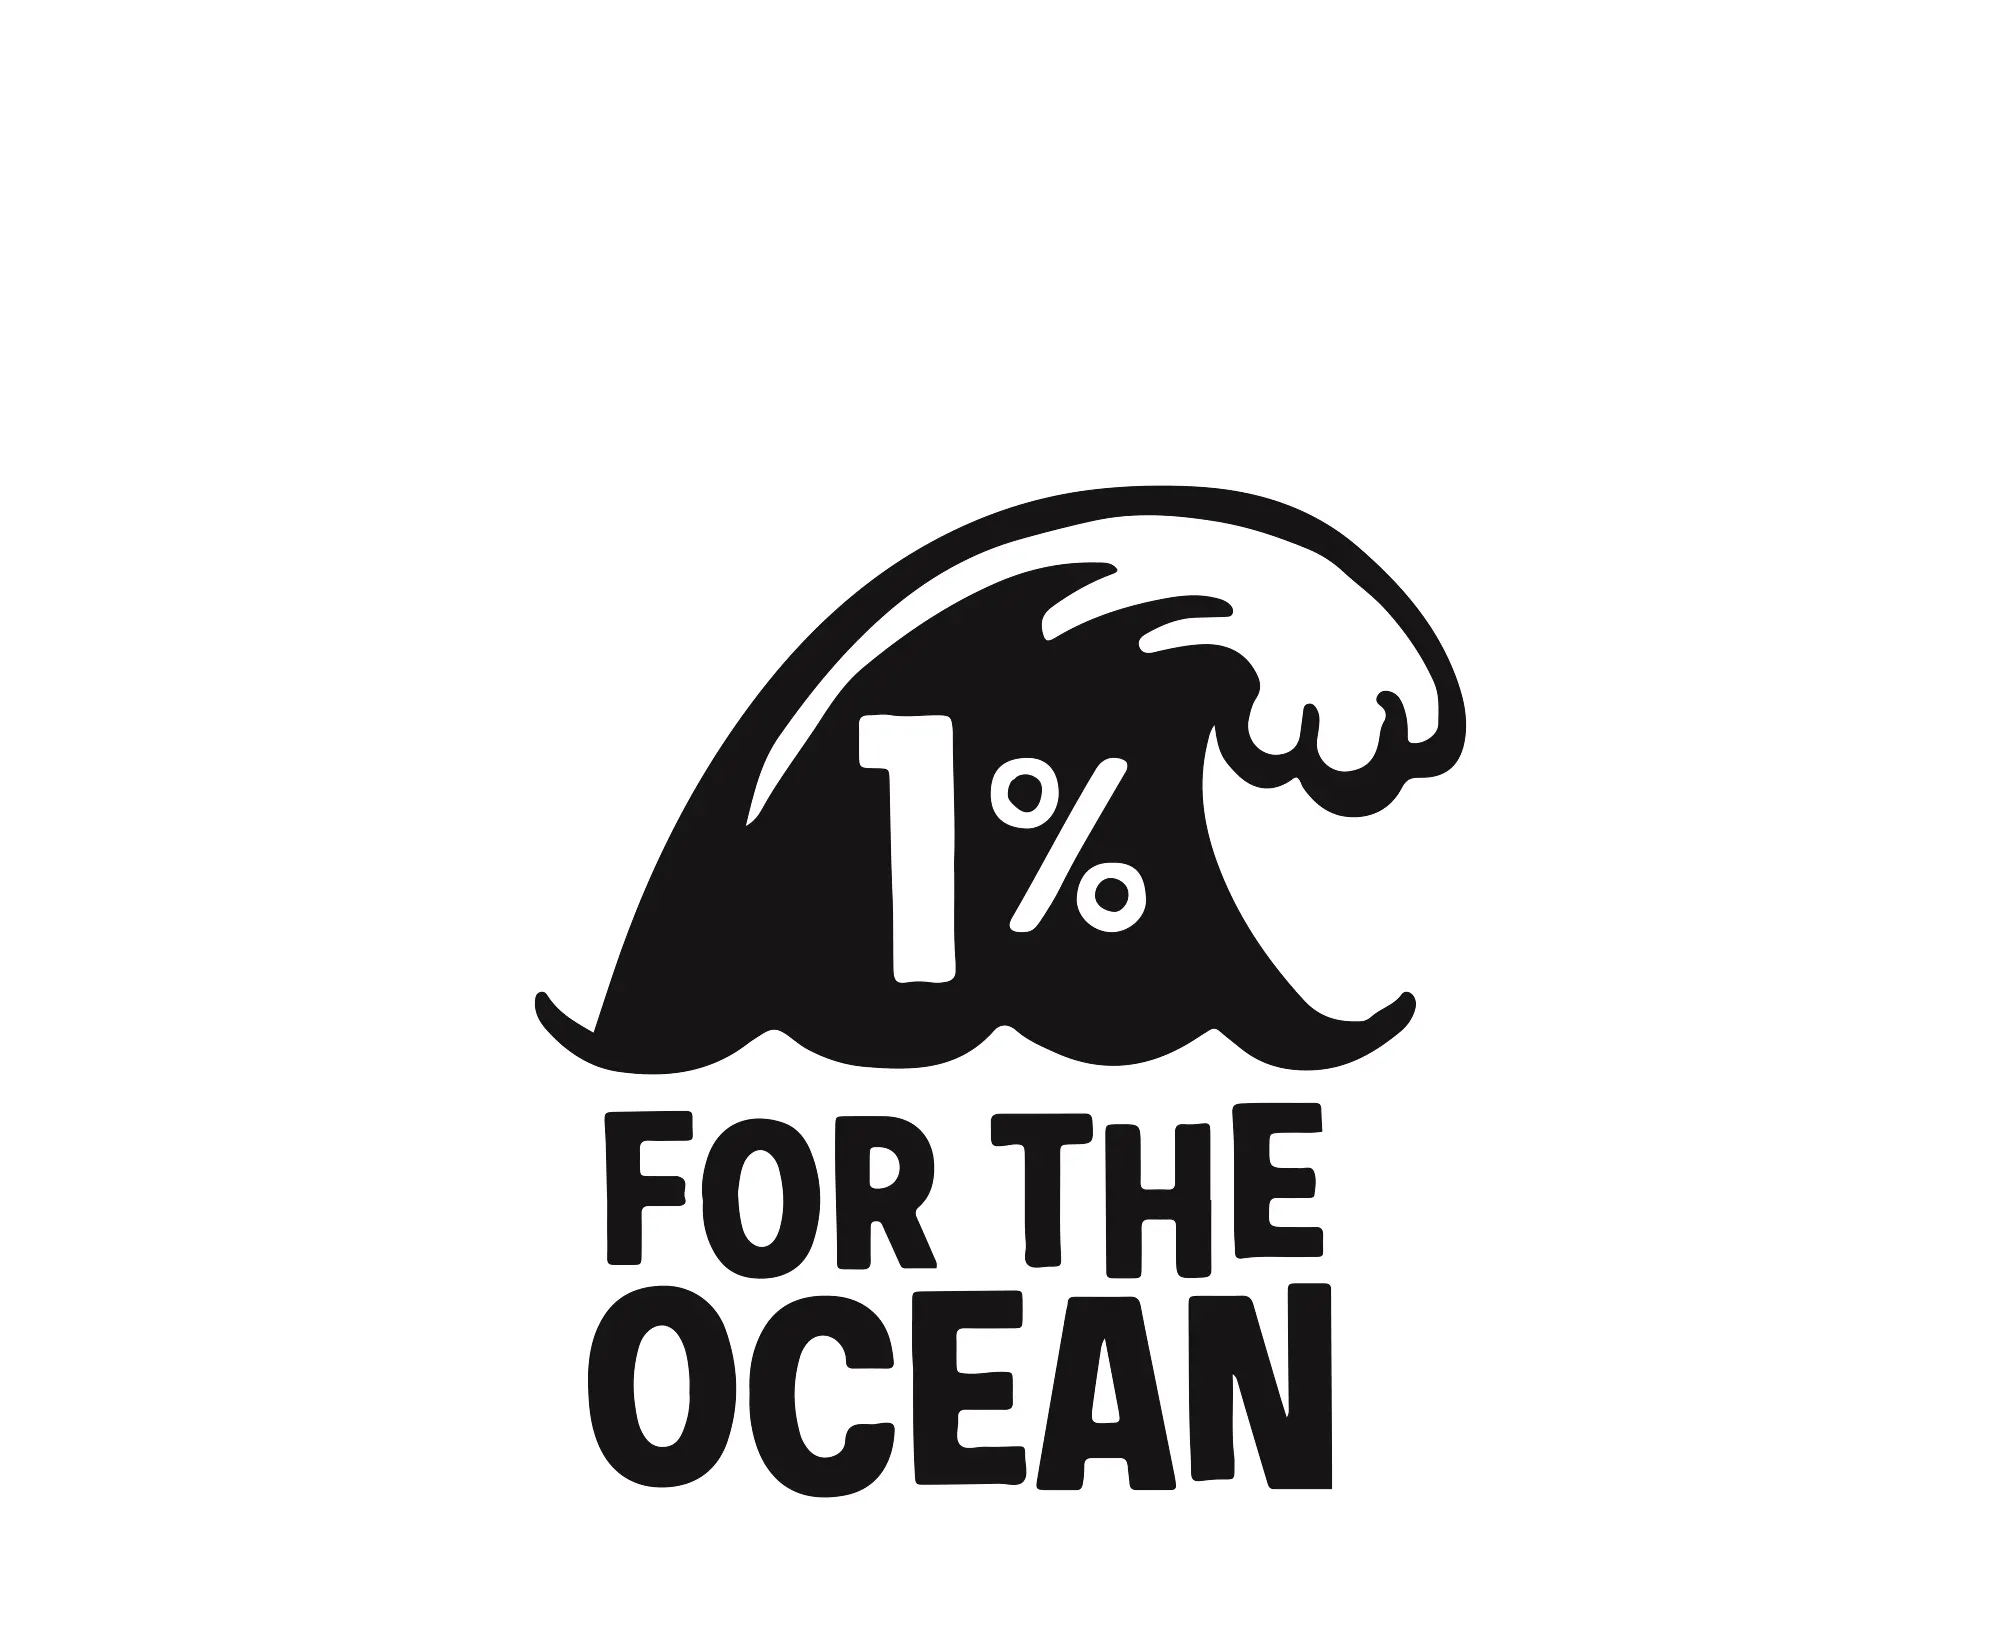 FCS 1% For The Ocean